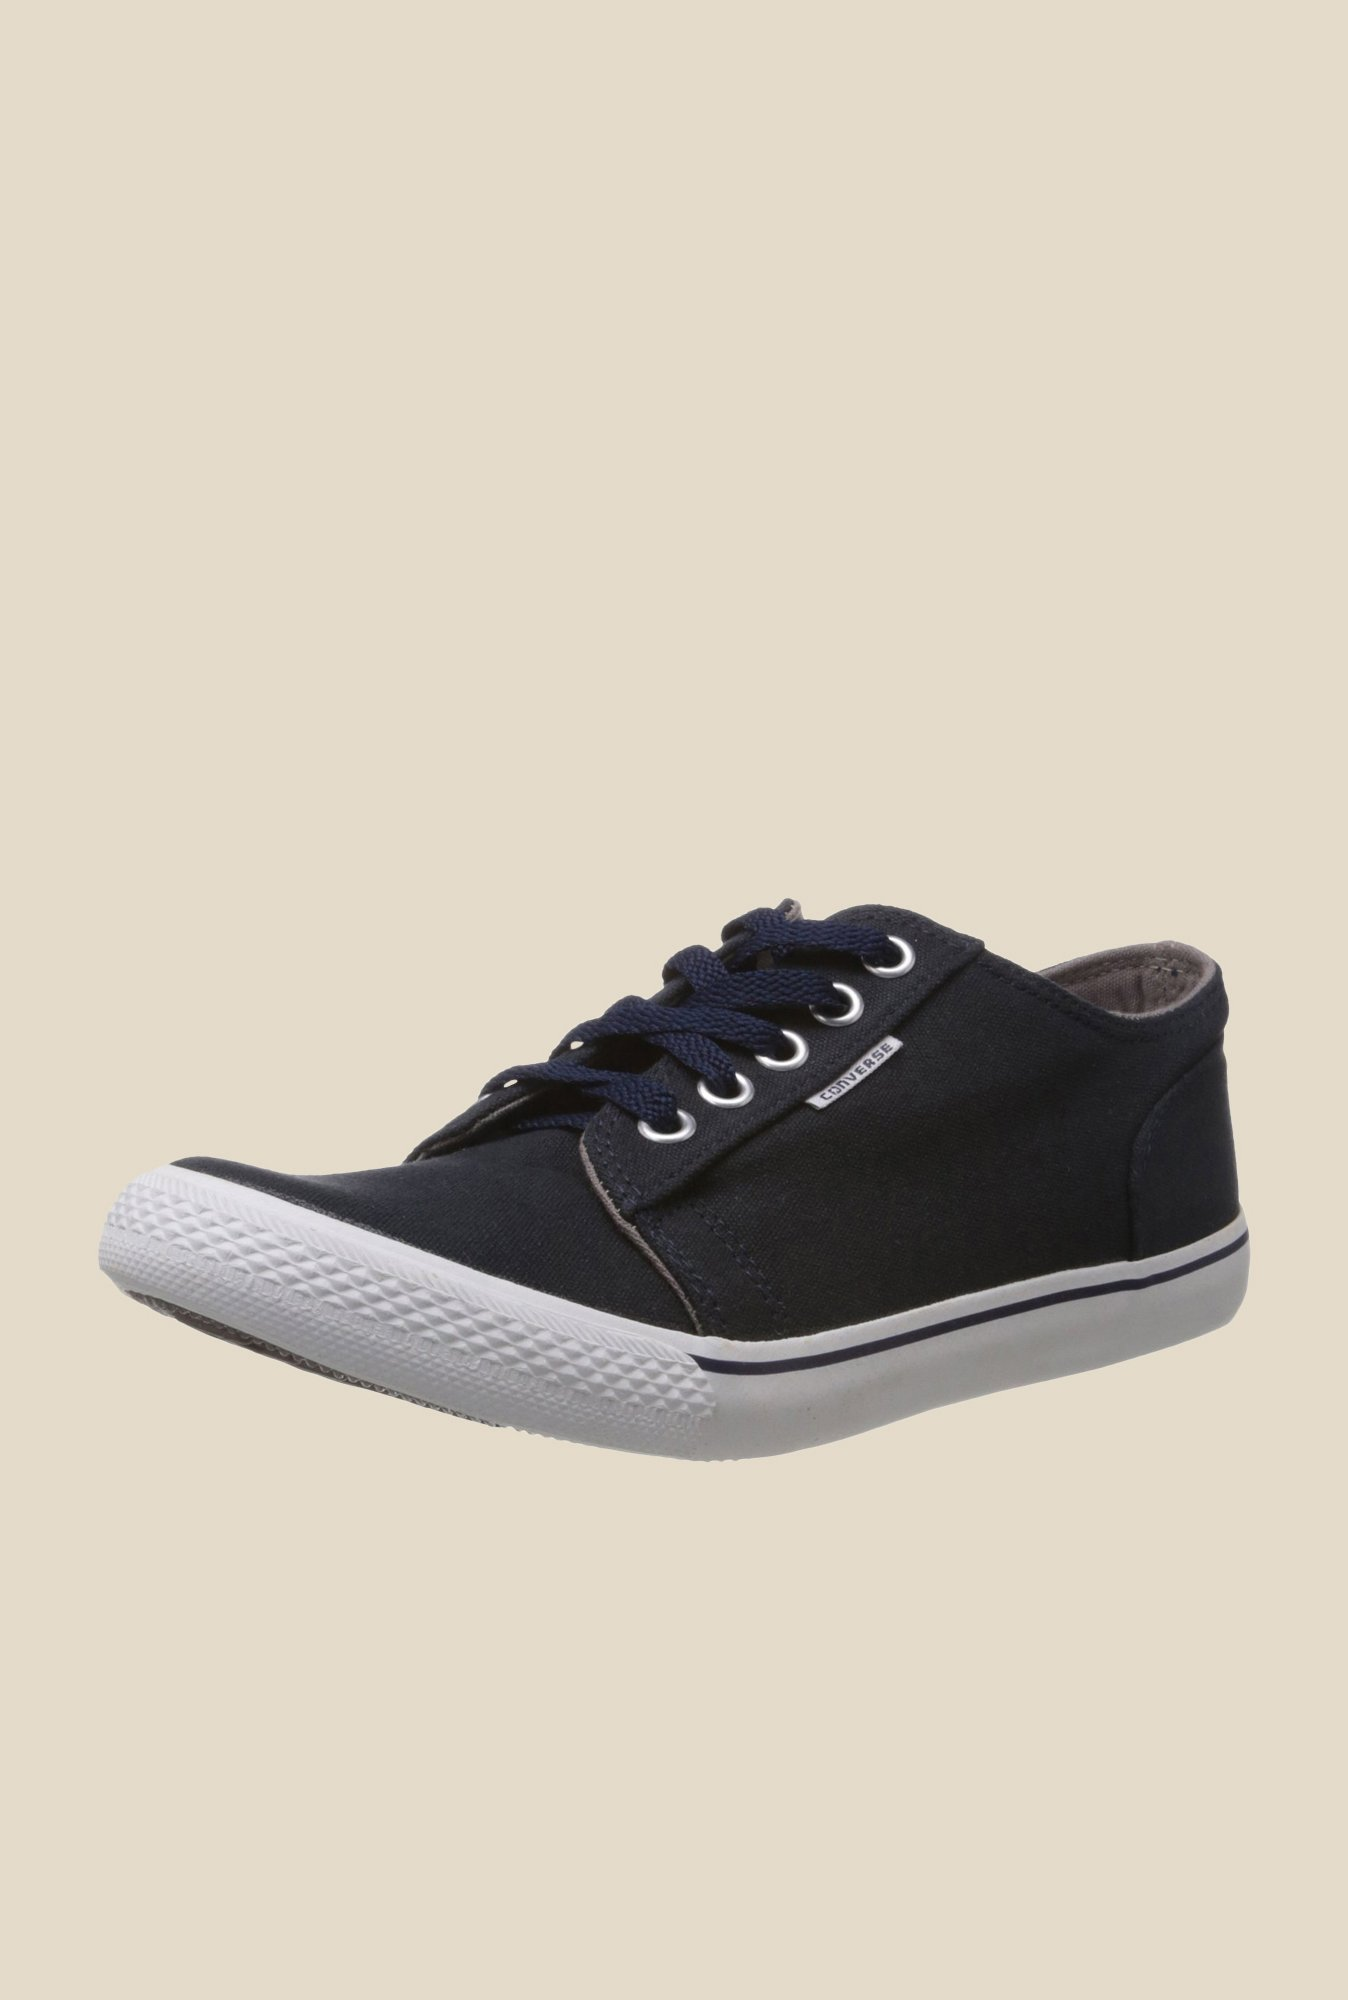 Converse Navy Casual Sneakers